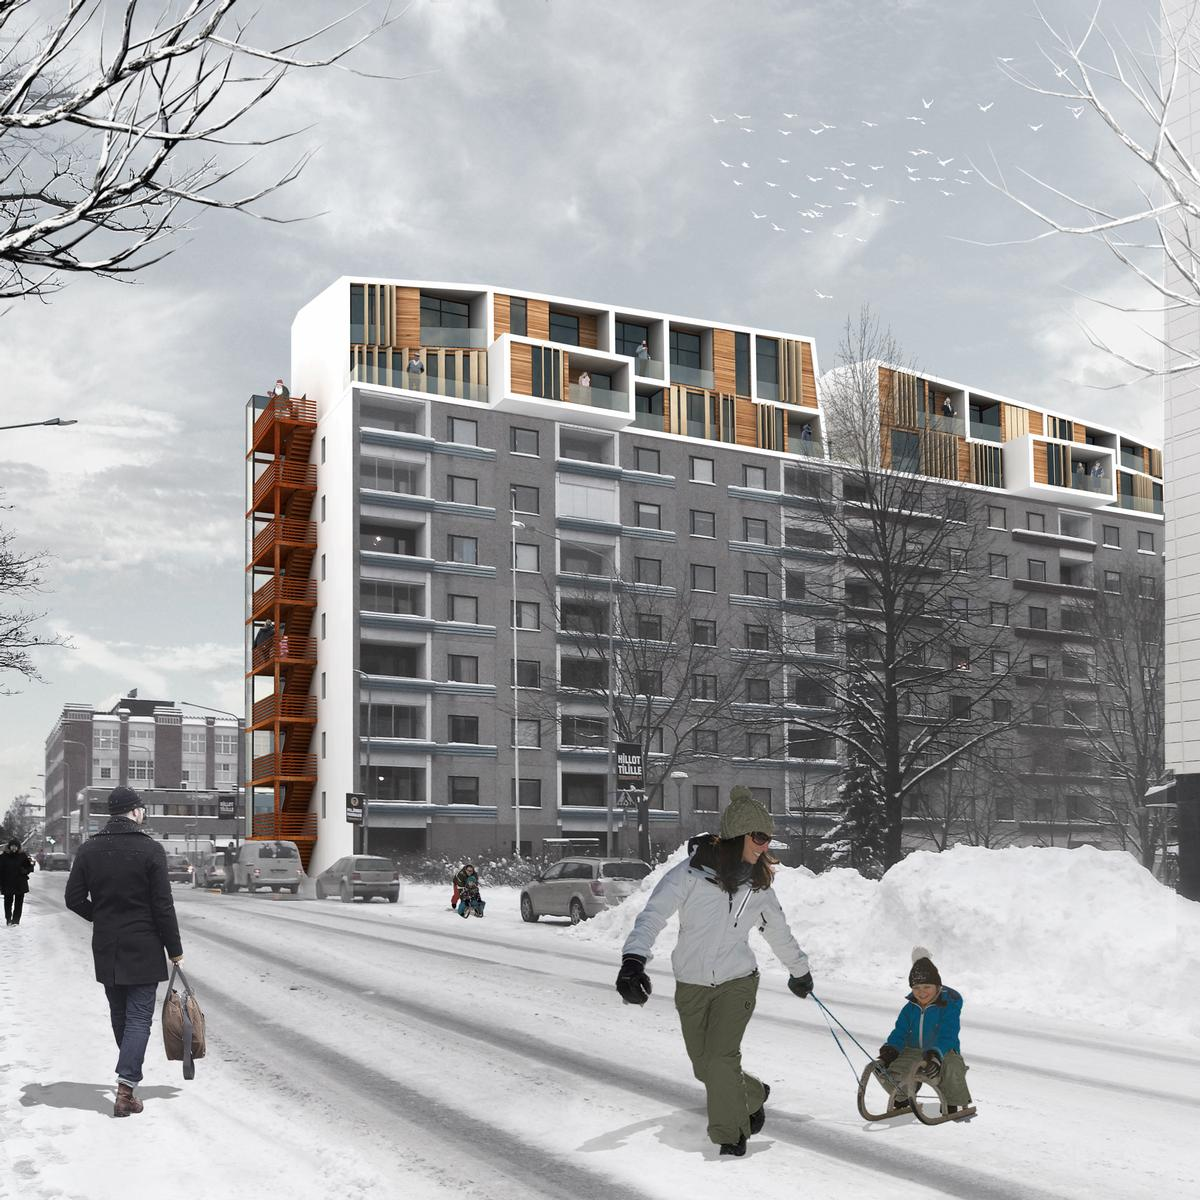 First prize winners in the large-scale intervention category were Lisa Voigtländer and SungBok Song for their design for Tampere, Finland / Plan B